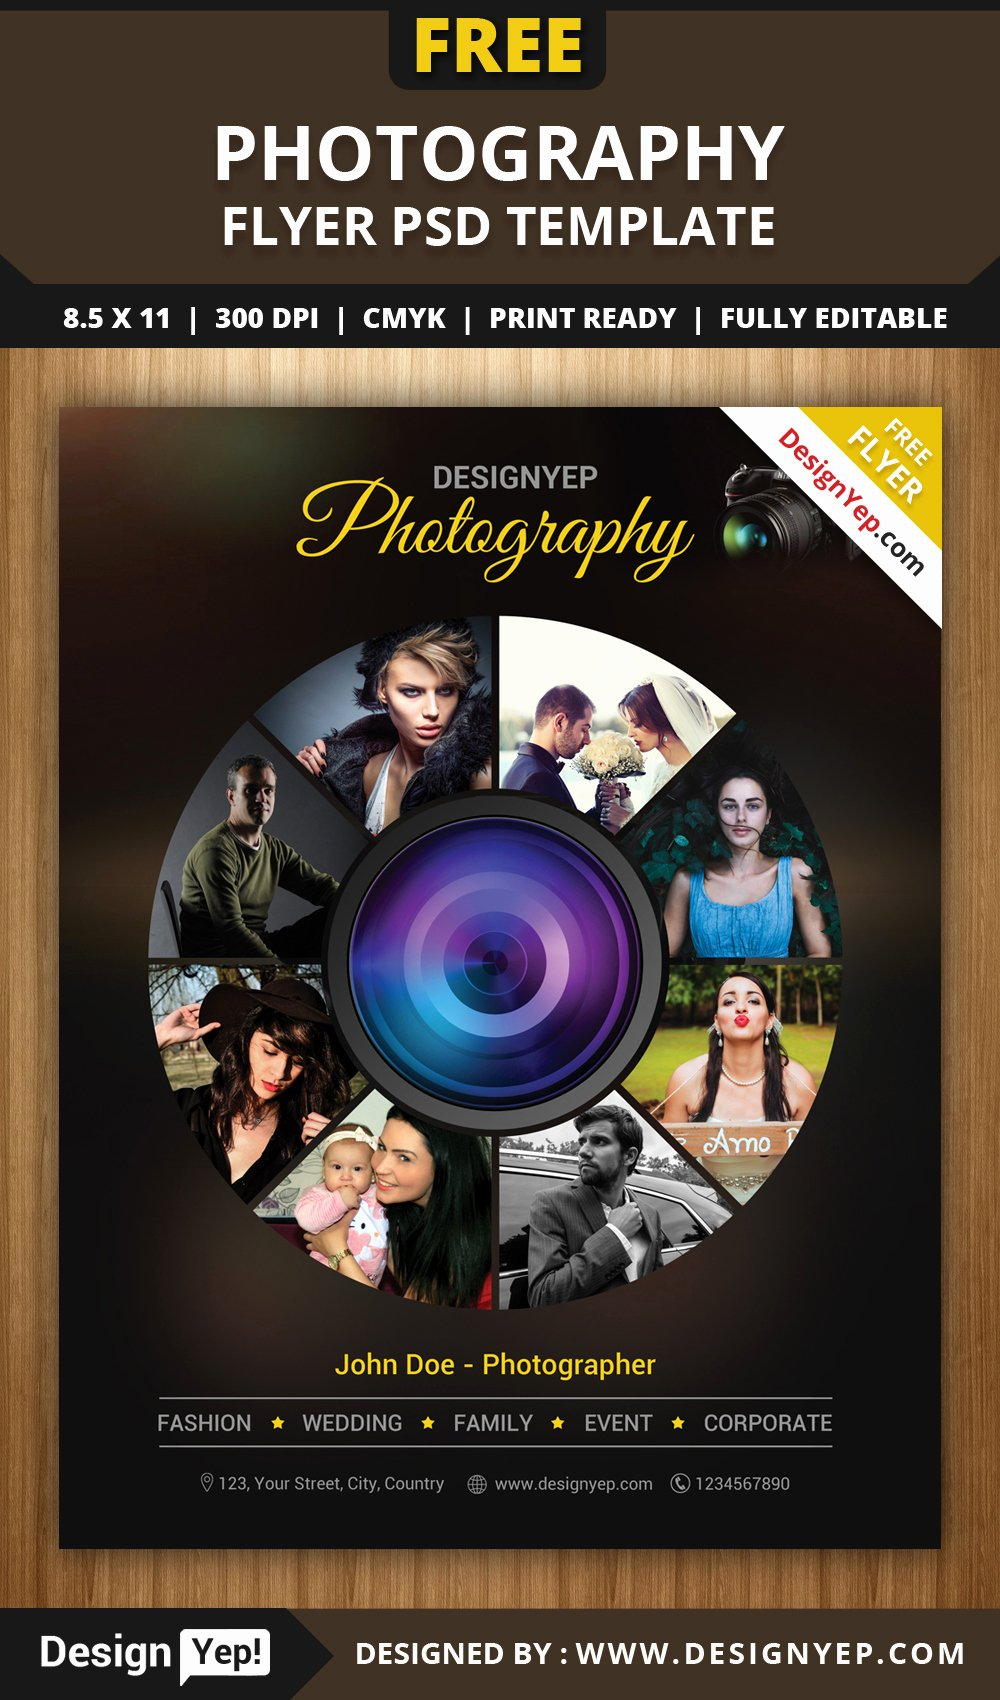 Free Photography Flyer Templates Lovely Free Graphy Flyer Psd Template Designyep